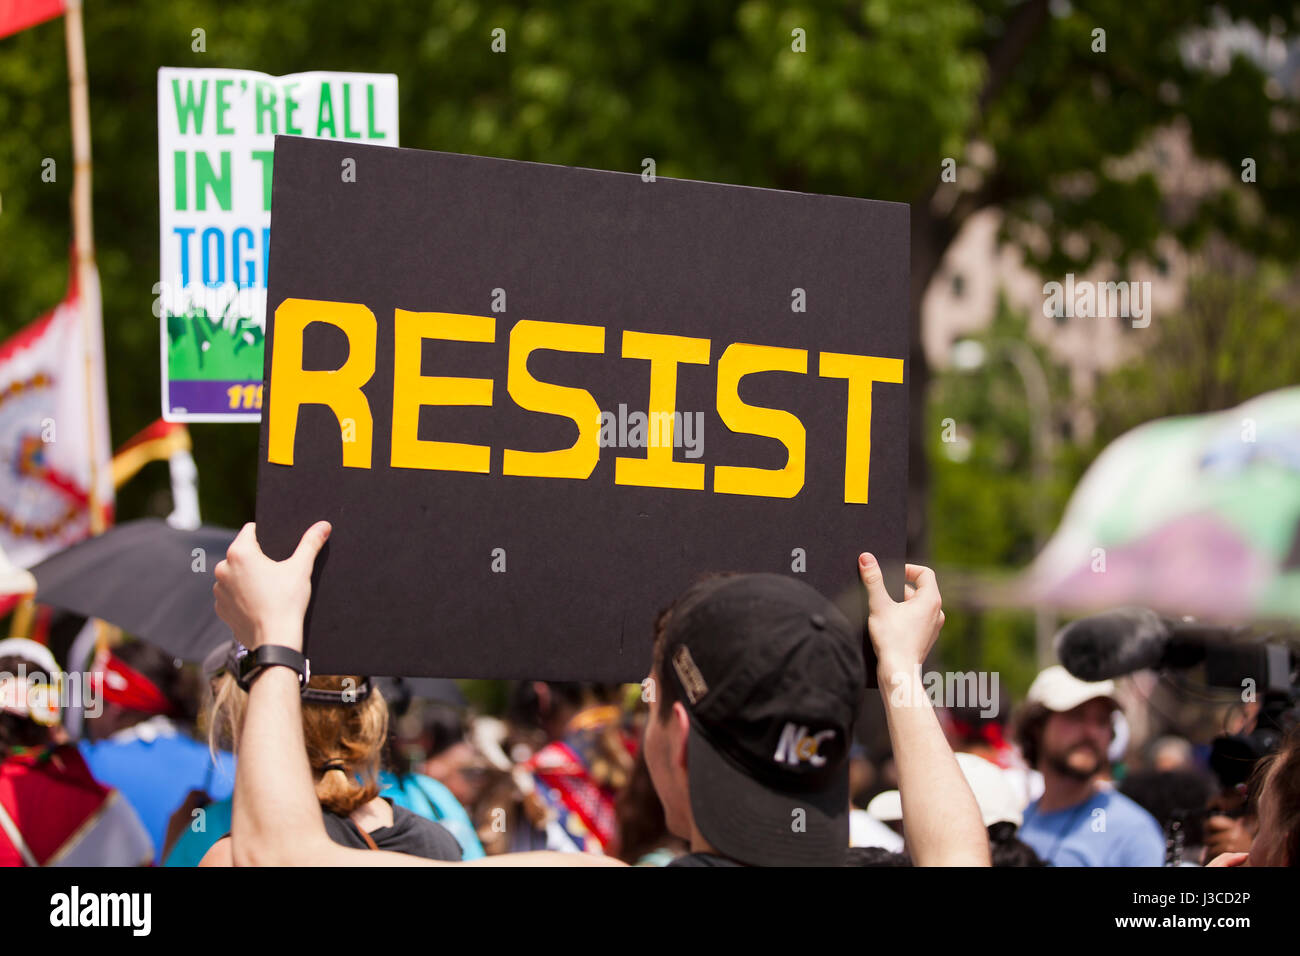 Resist sign at Anti Trump protest rally - USA - Stock Image